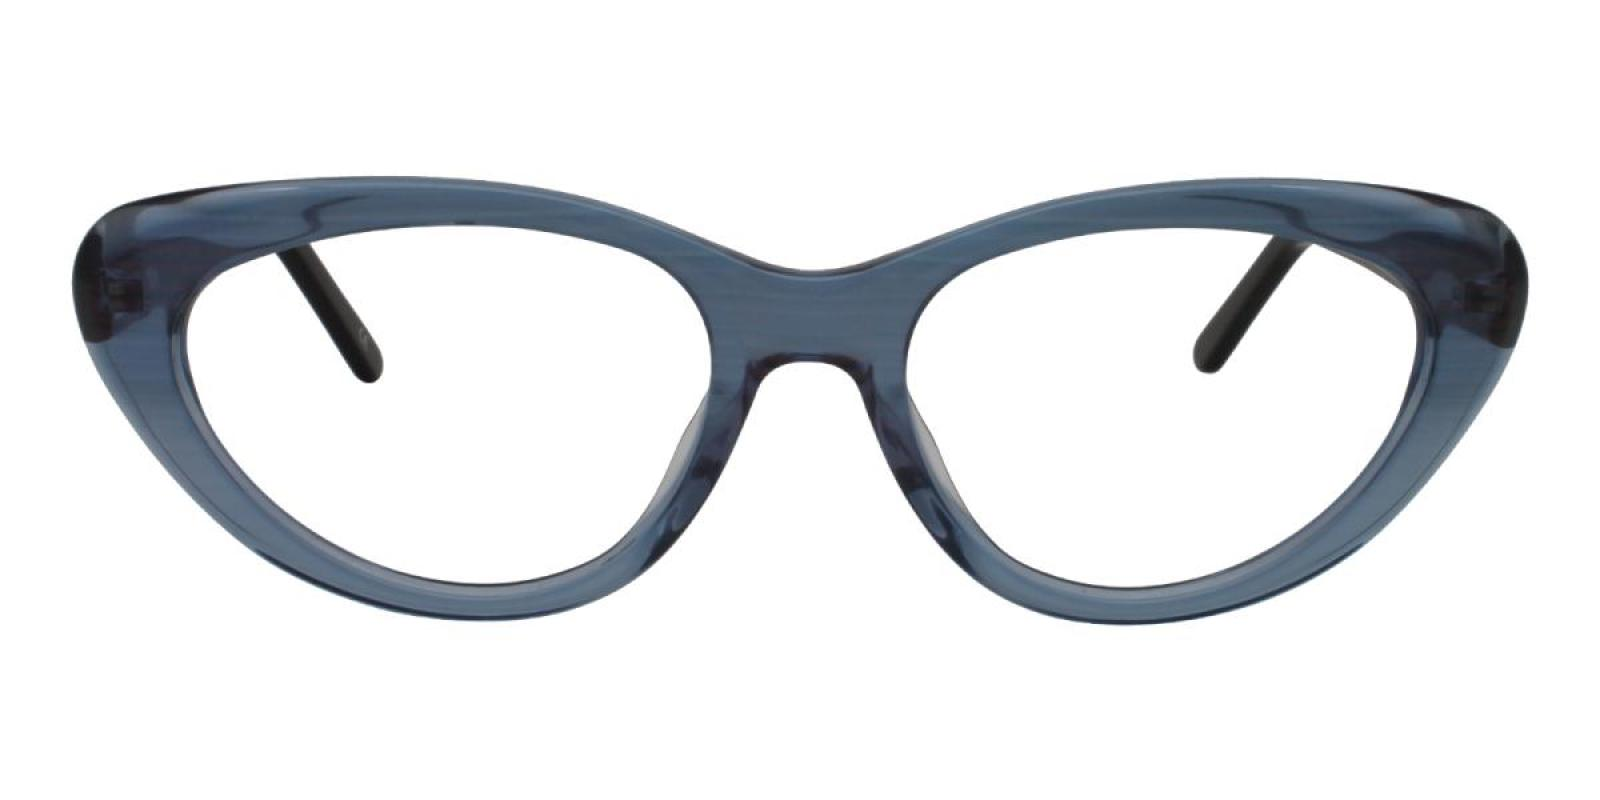 Jeanne-Blue-Cat-Acetate-Eyeglasses-additional2